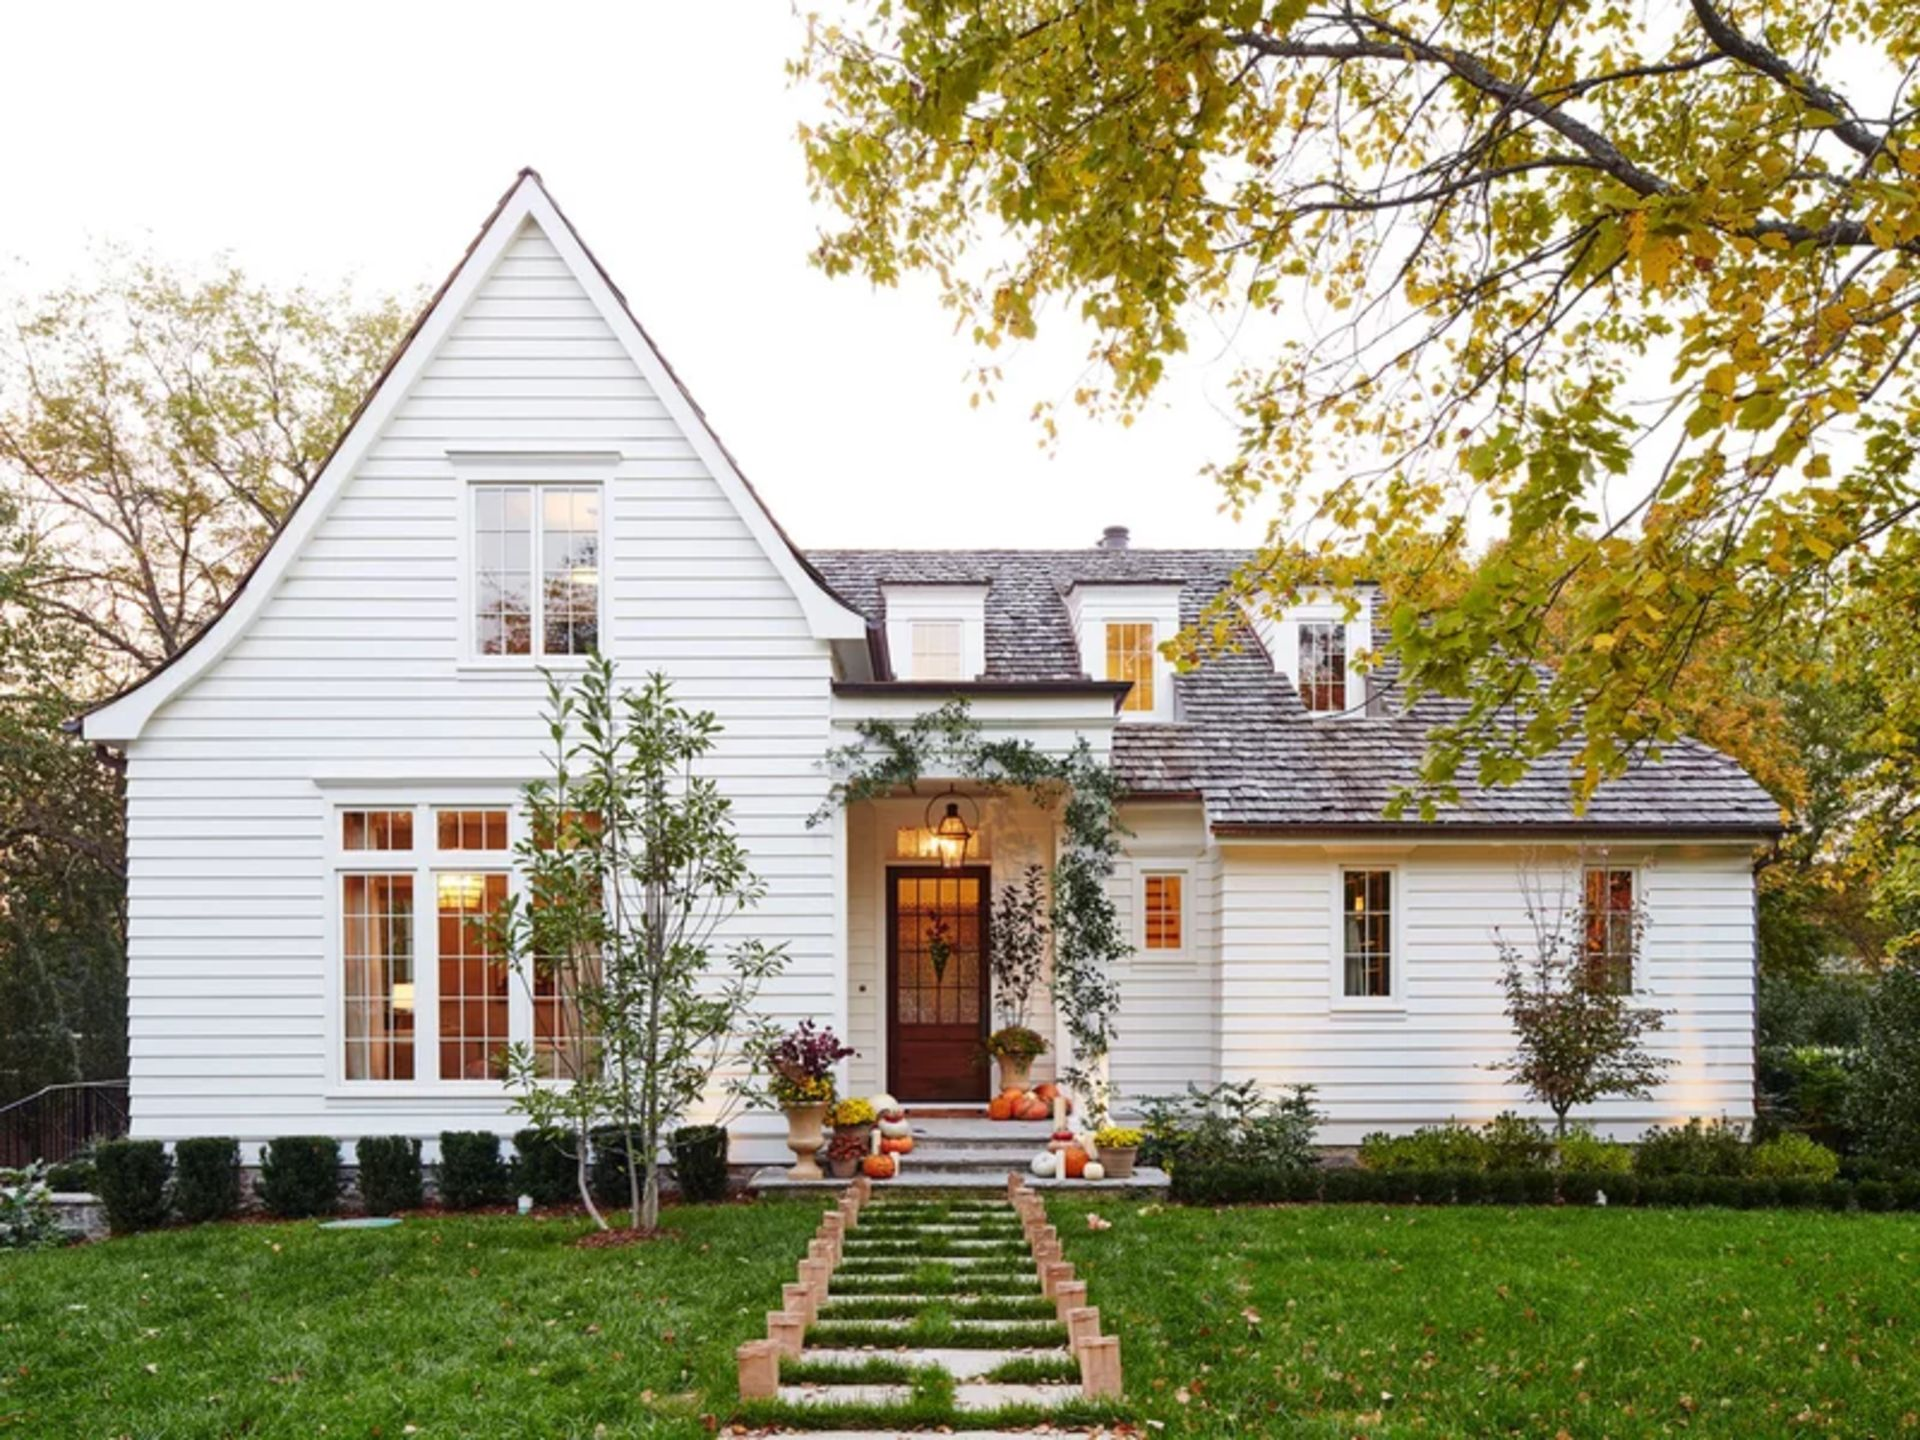 Here's how to negotiate when buying a home. (Spoiler alert: It's not like on HGTV.)